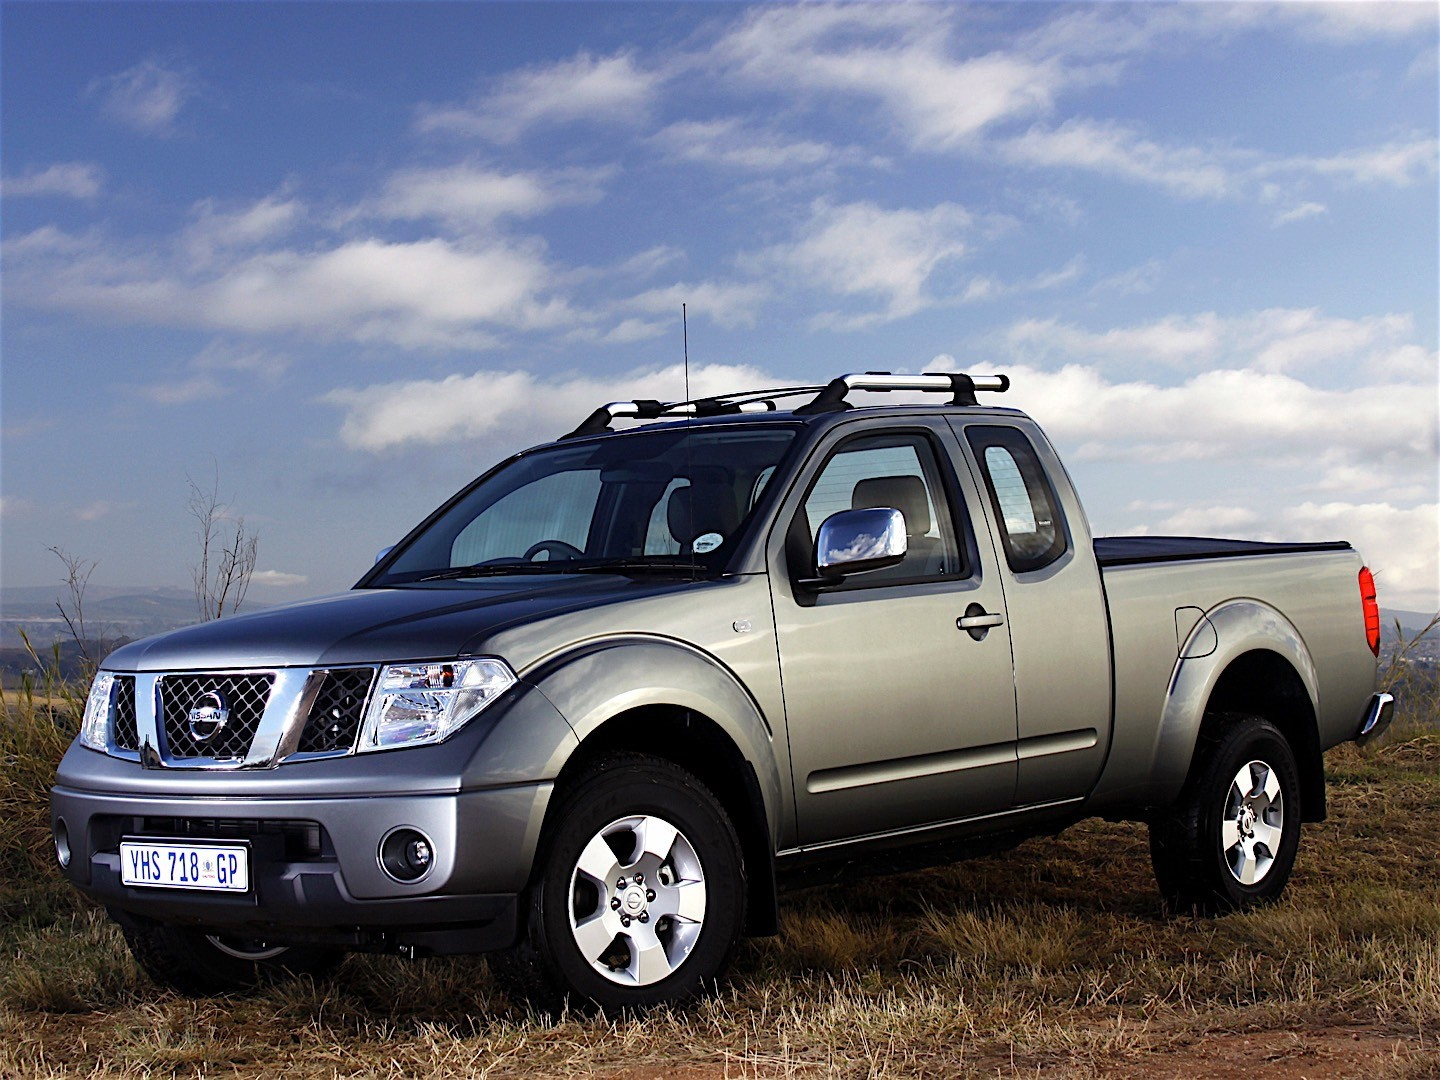 nissan navara frontier king cab specs 2005 2006 2007 2008 2009 2010 2011 2012 2013. Black Bedroom Furniture Sets. Home Design Ideas